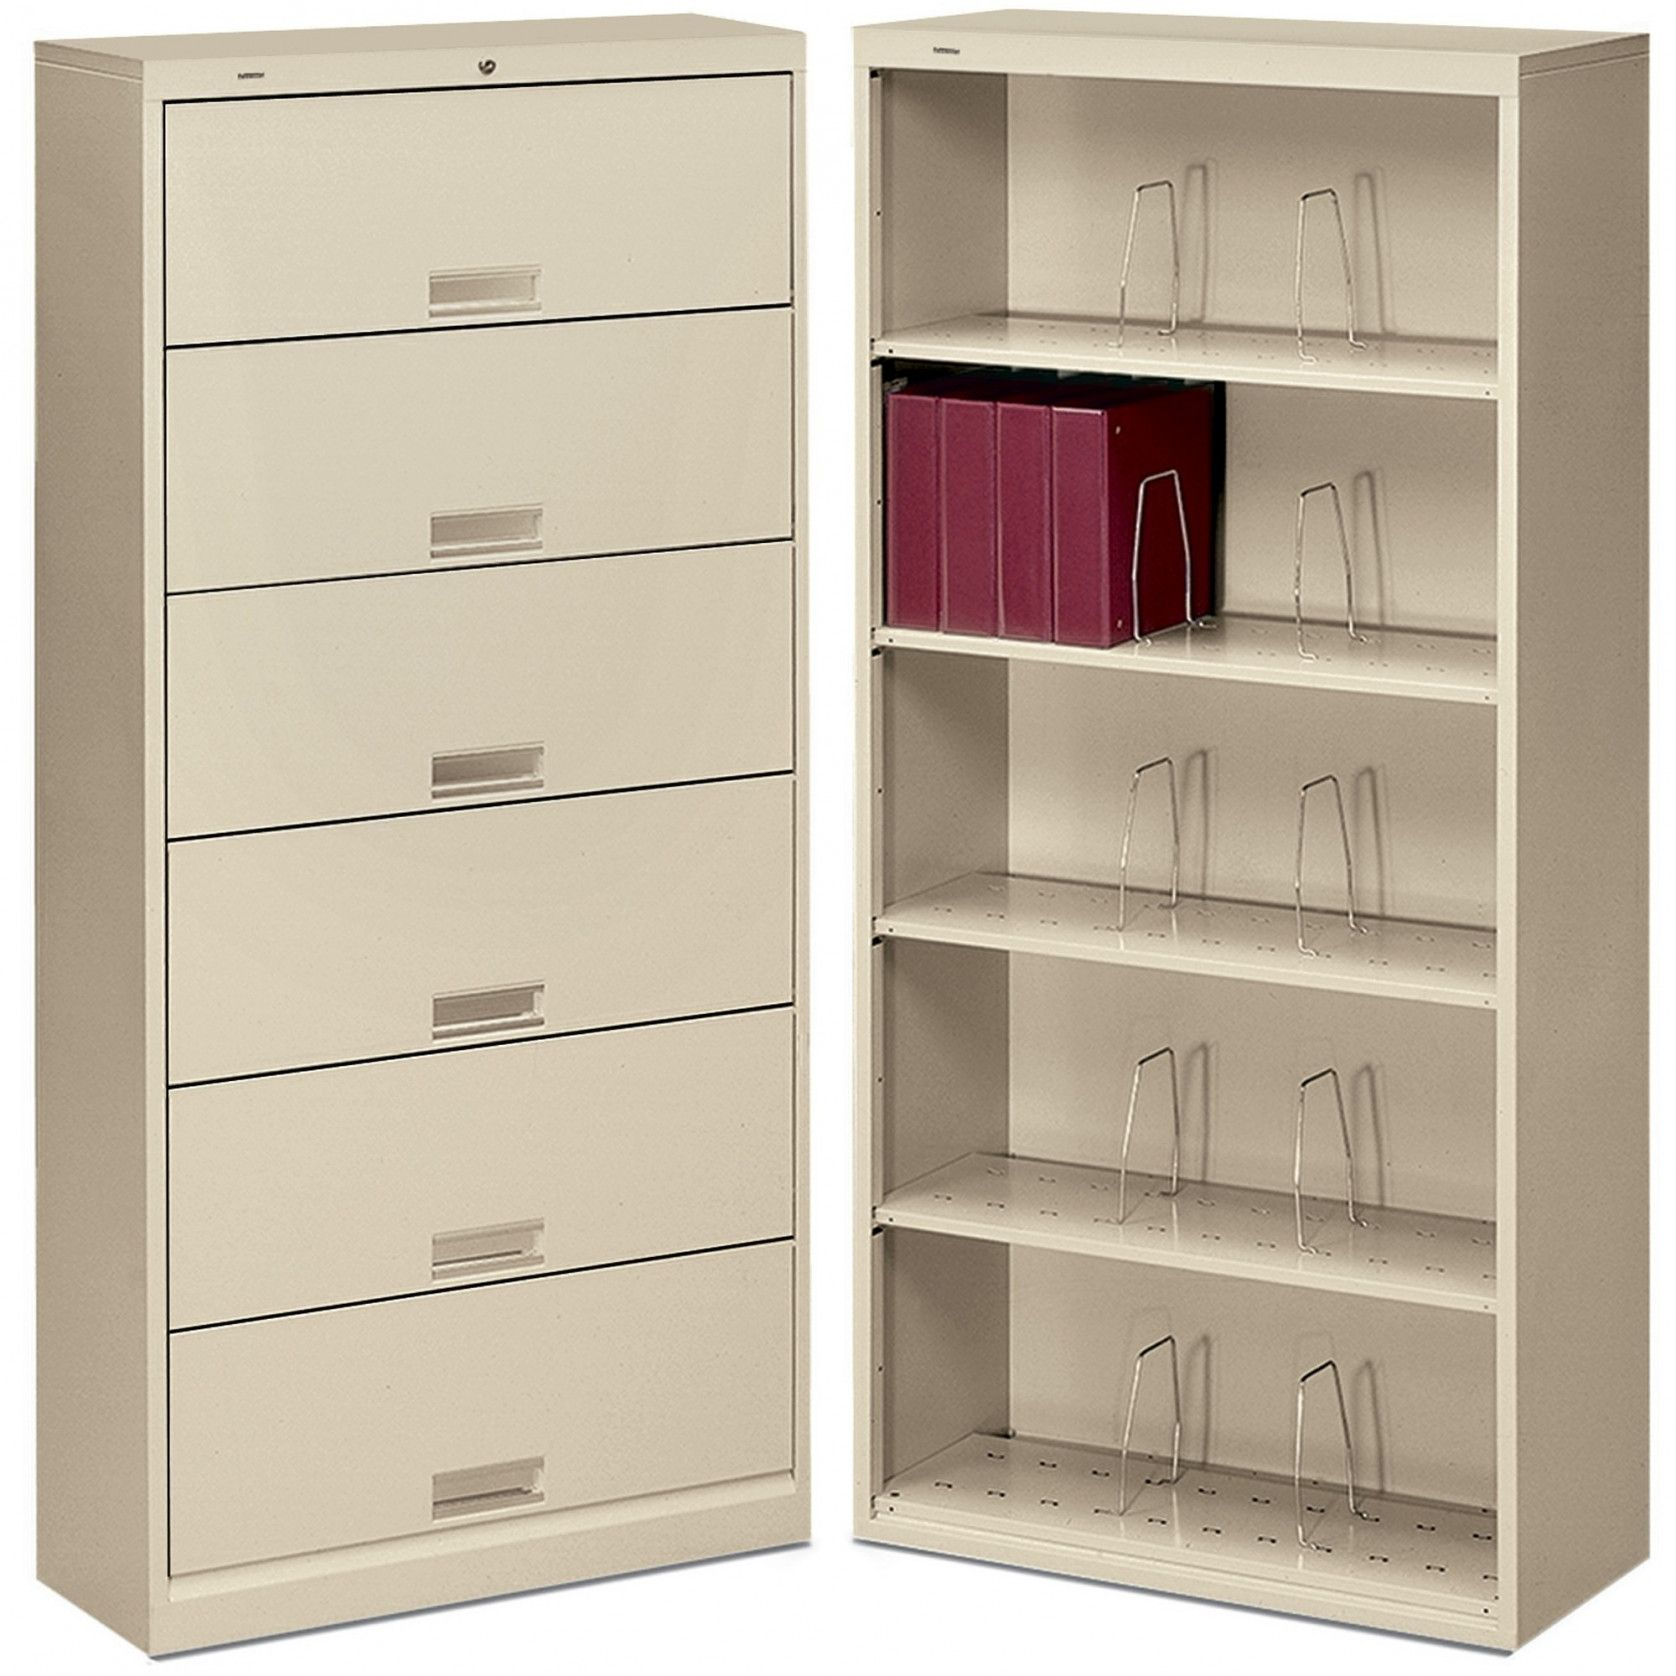 77 Open Shelf Filing Cabinets Small Kitchen island Ideas with